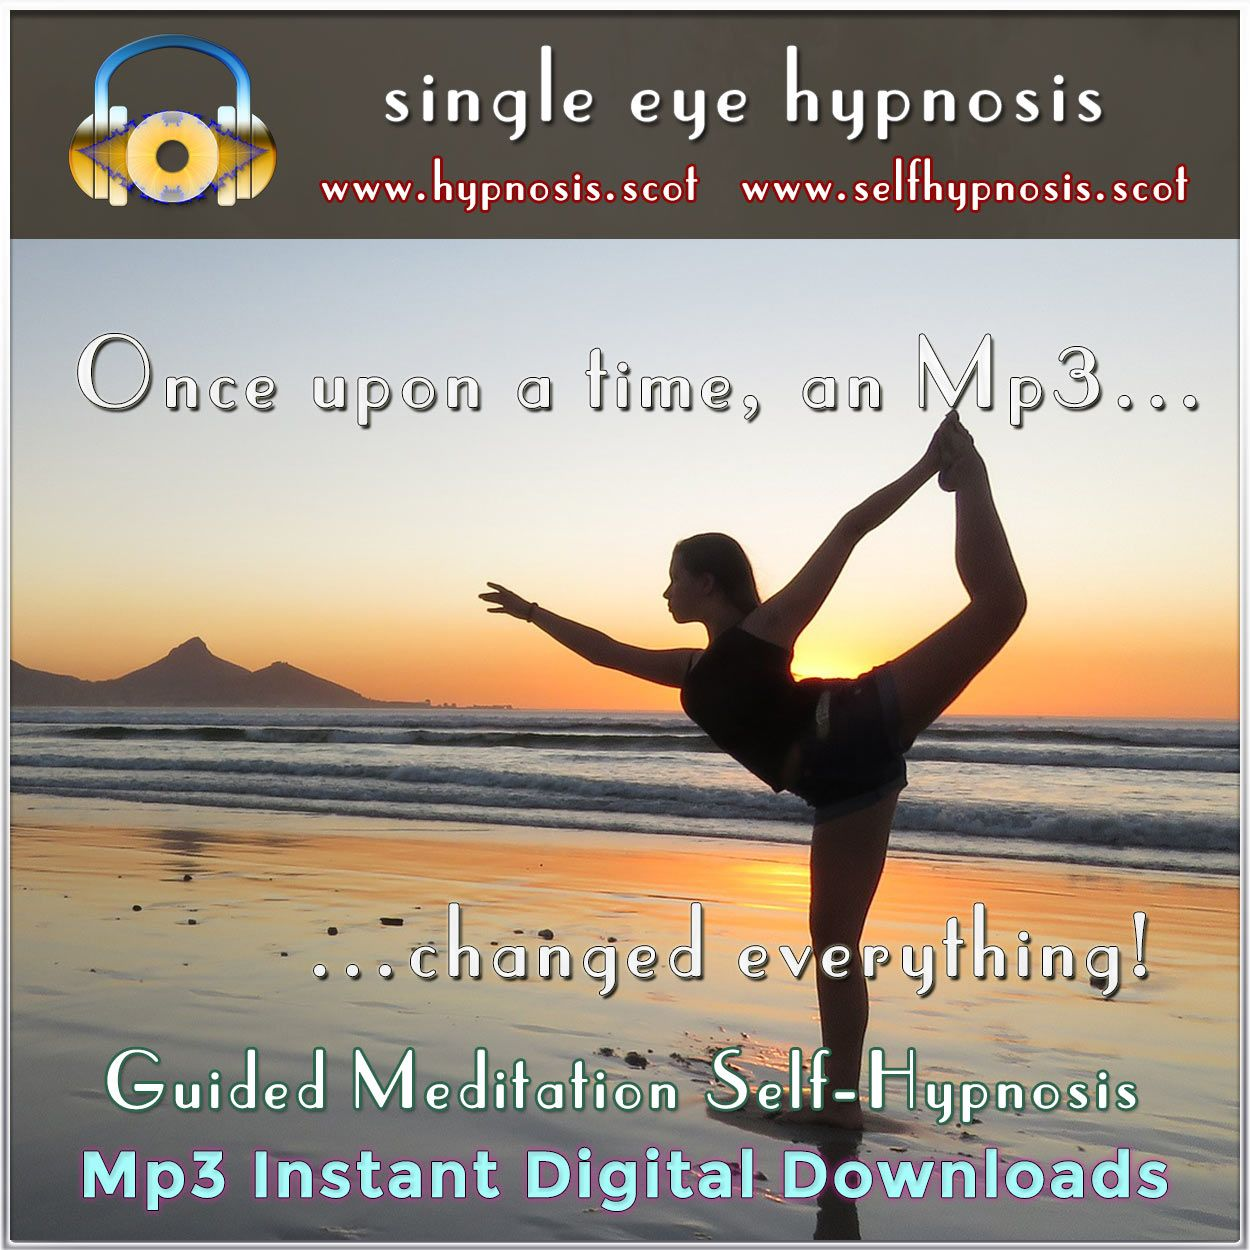 Hypnotherapy resources: scripts, recordings and background